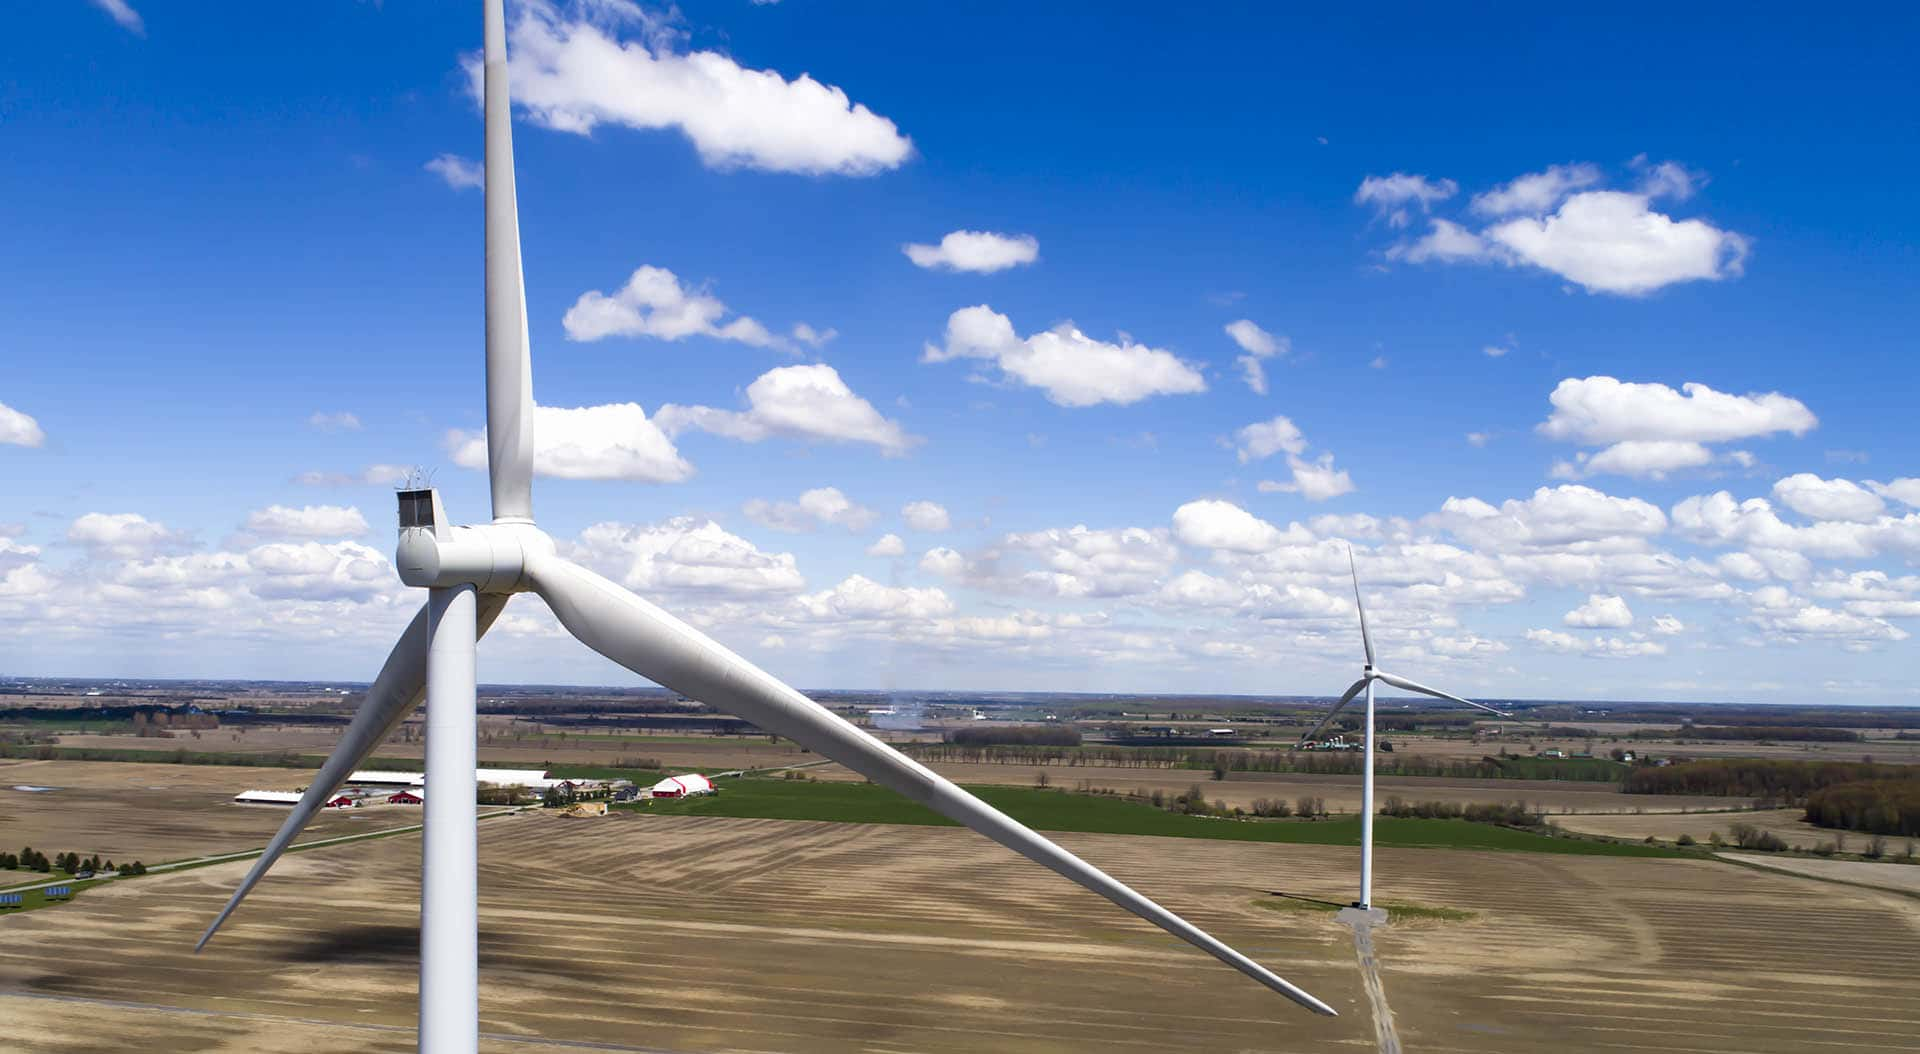 wind-turbine-inspection-image